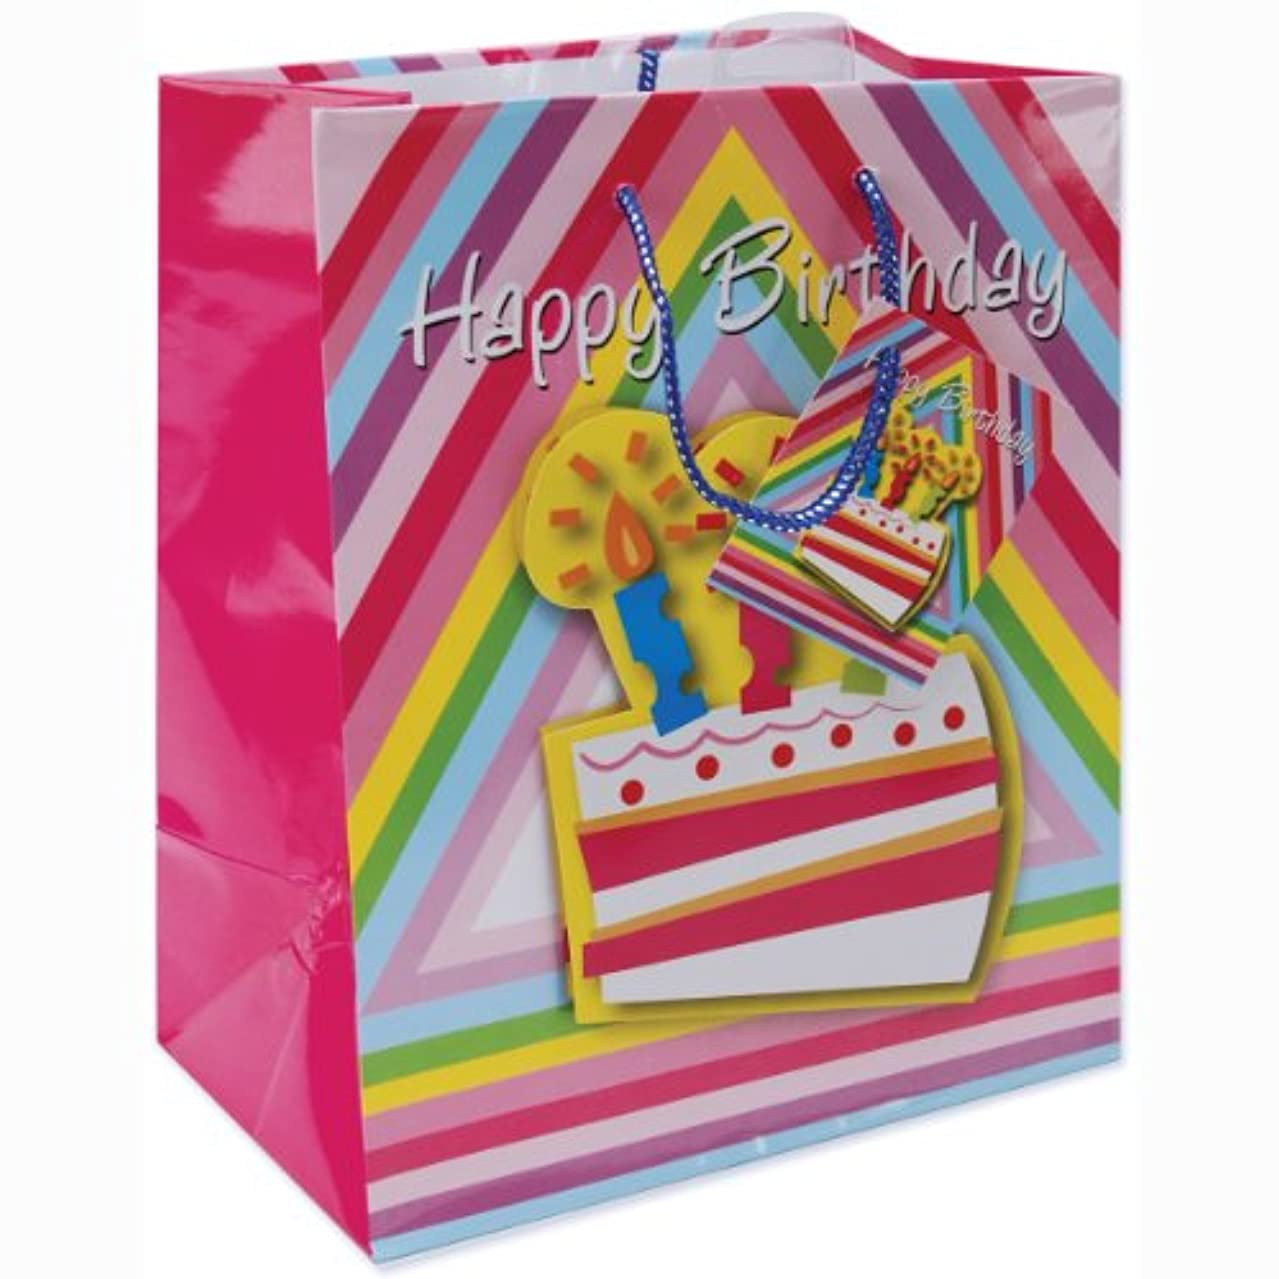 Cindus Gift Bags, 10-1/2 by 5-3/8 by 13-Inch, Birthday Cake